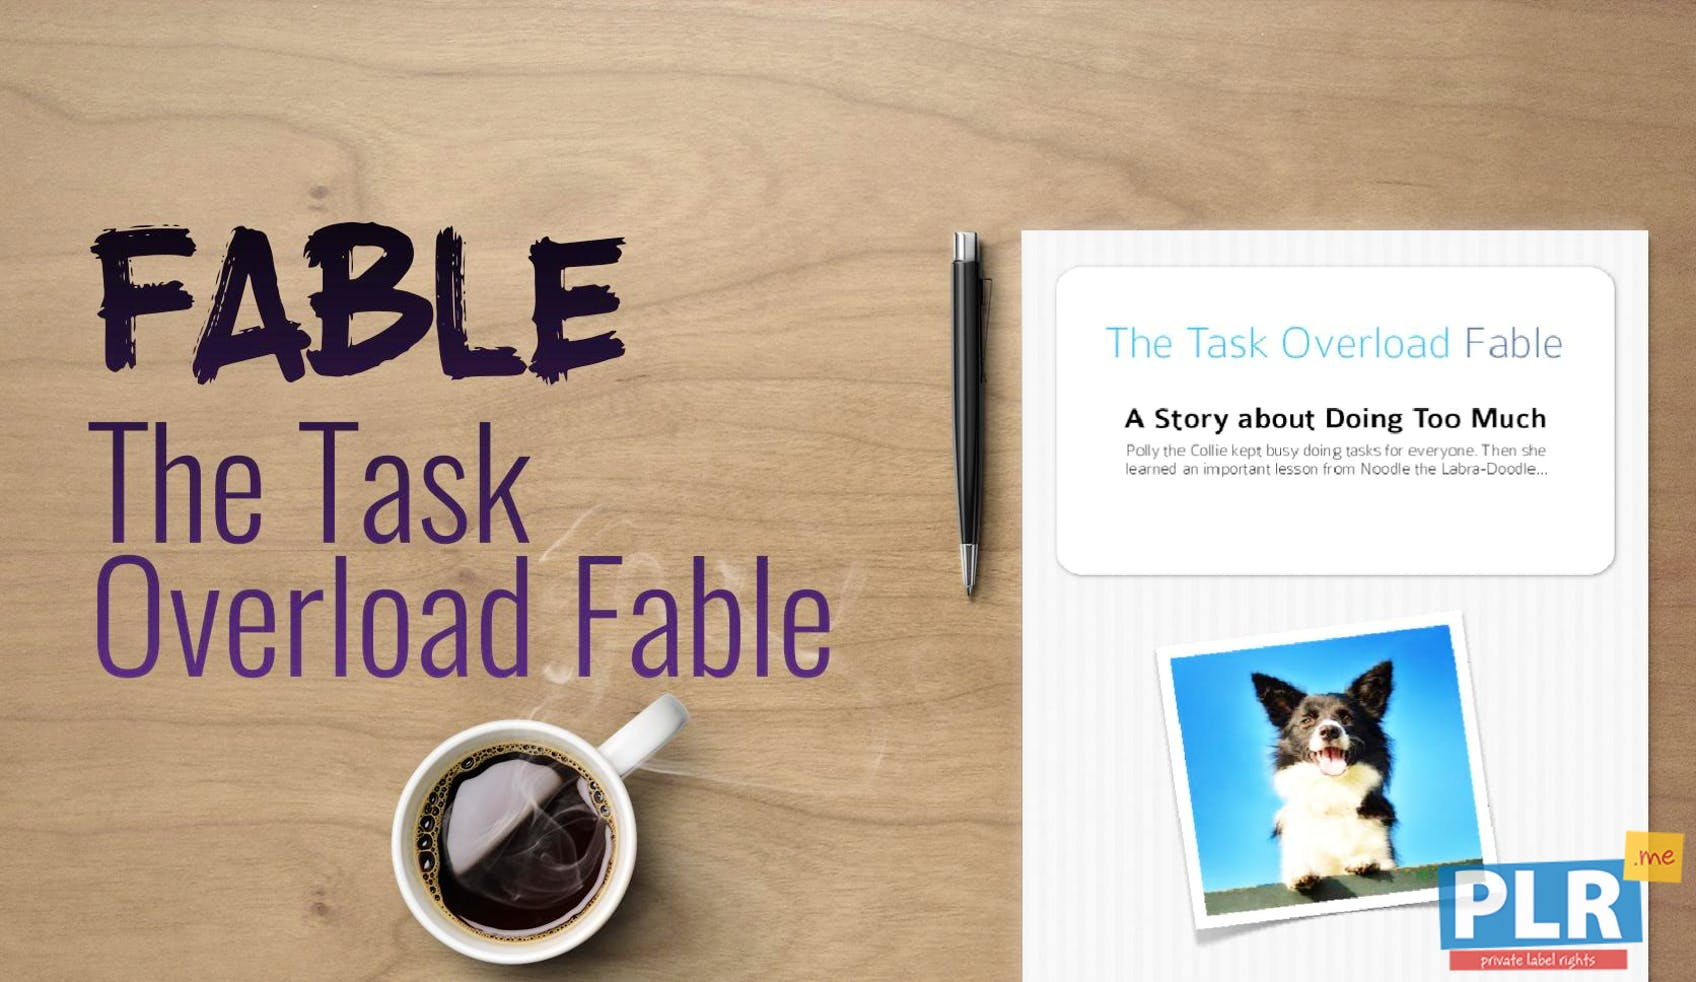 The Task Overload Fable